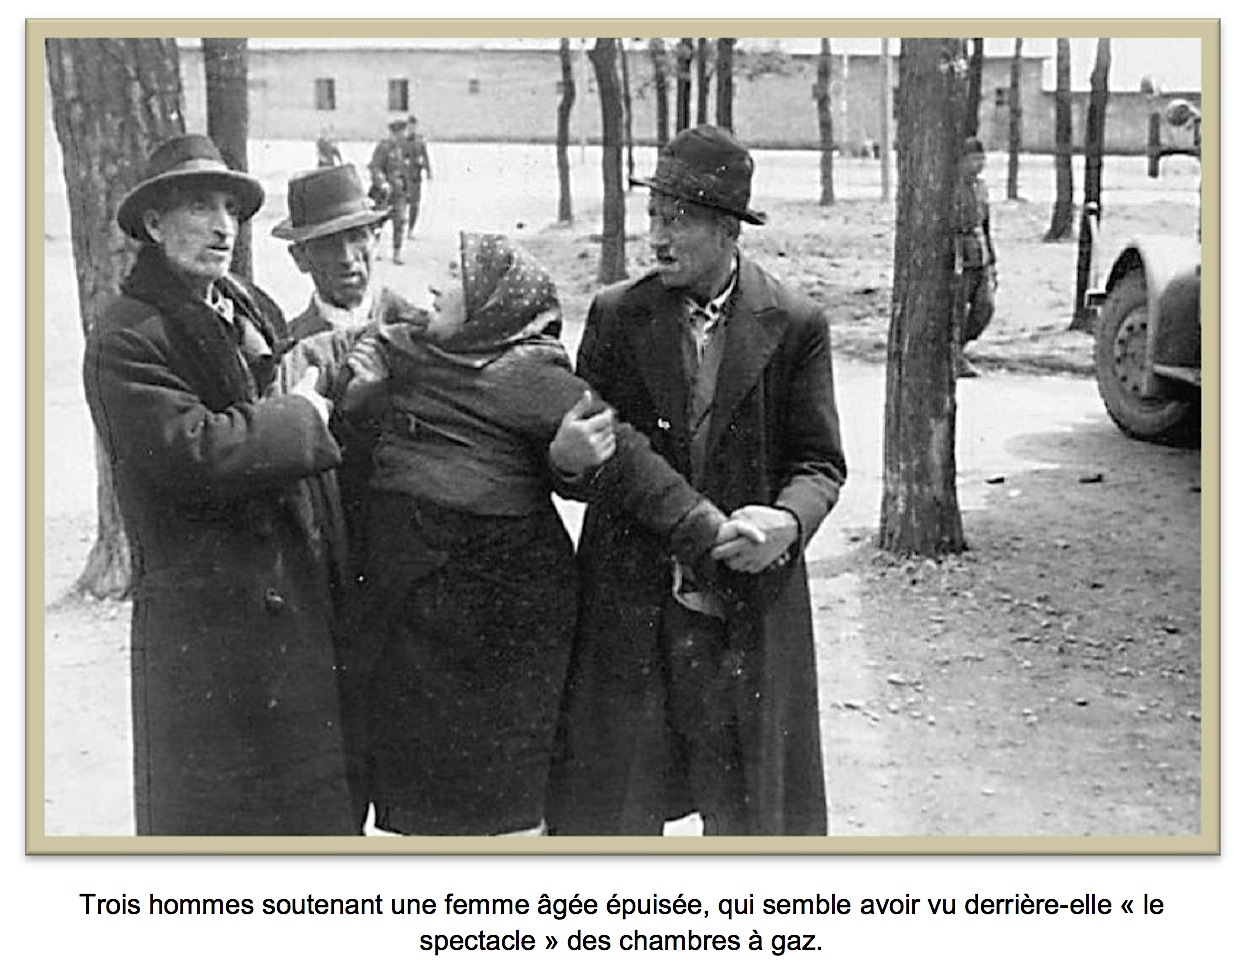 ALBUM AUSCHWITZ pic of 3 men and a woman.jpg